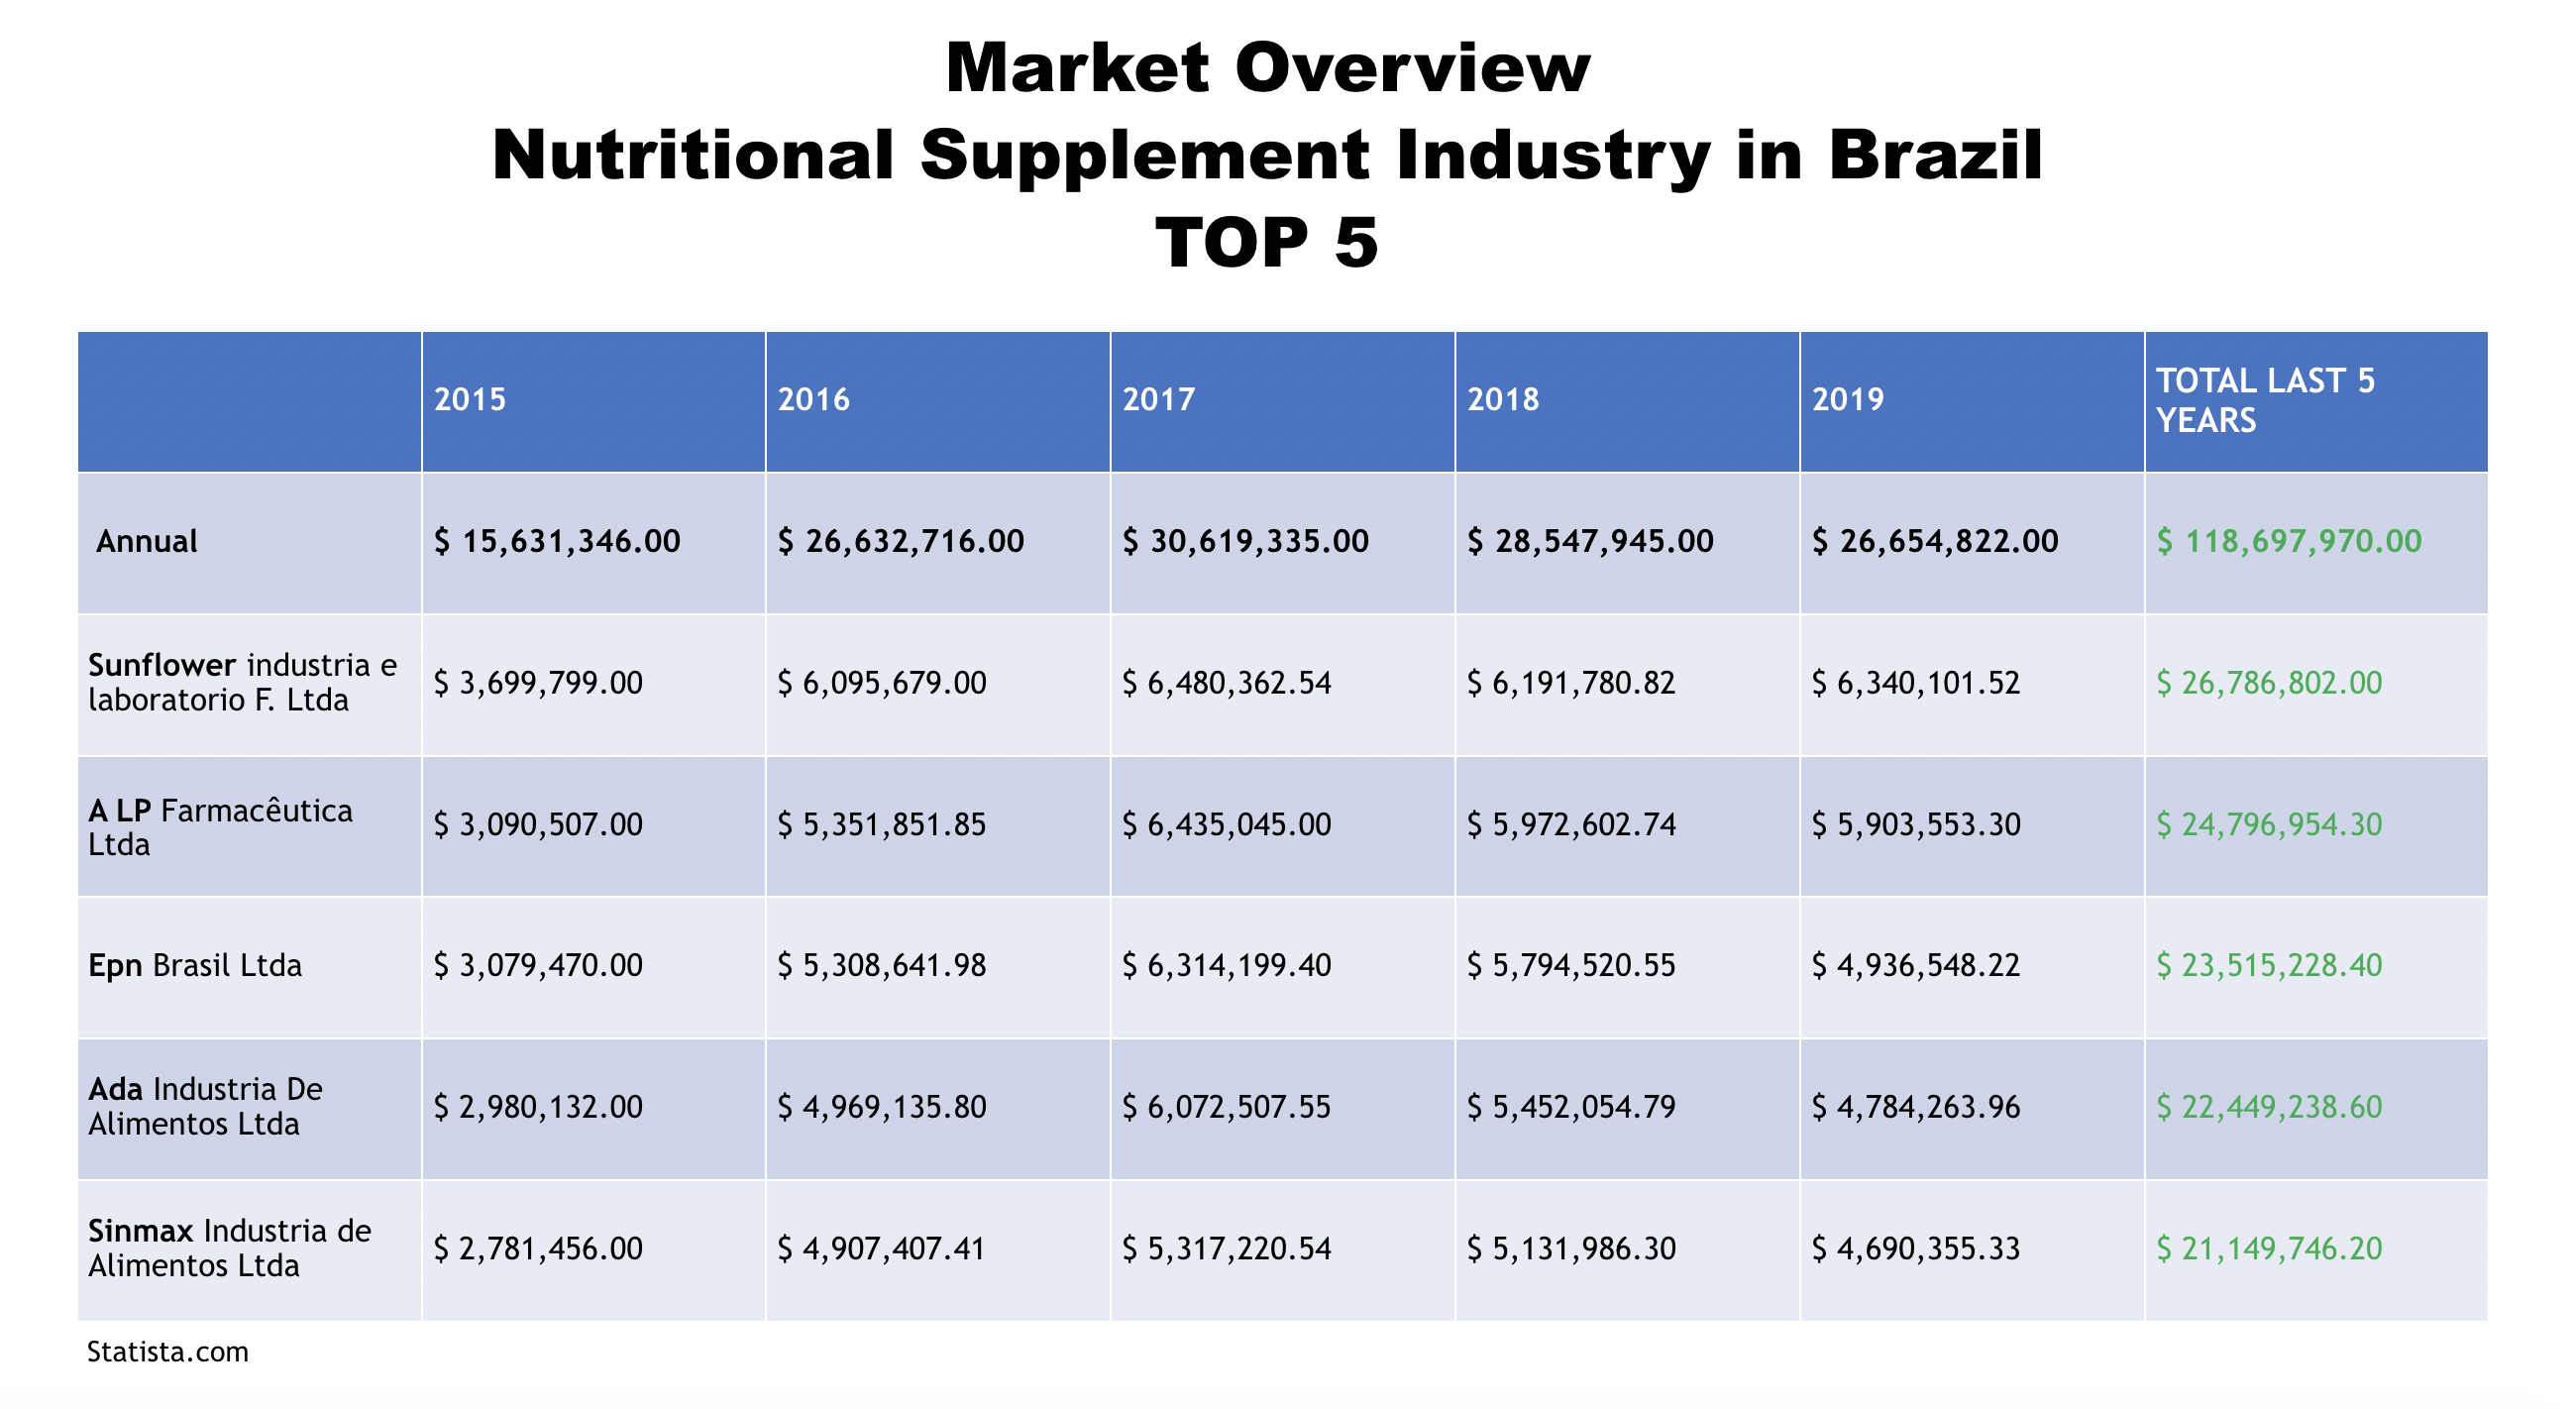 Market Overview: Nutritional Supplement Industry in Brazil